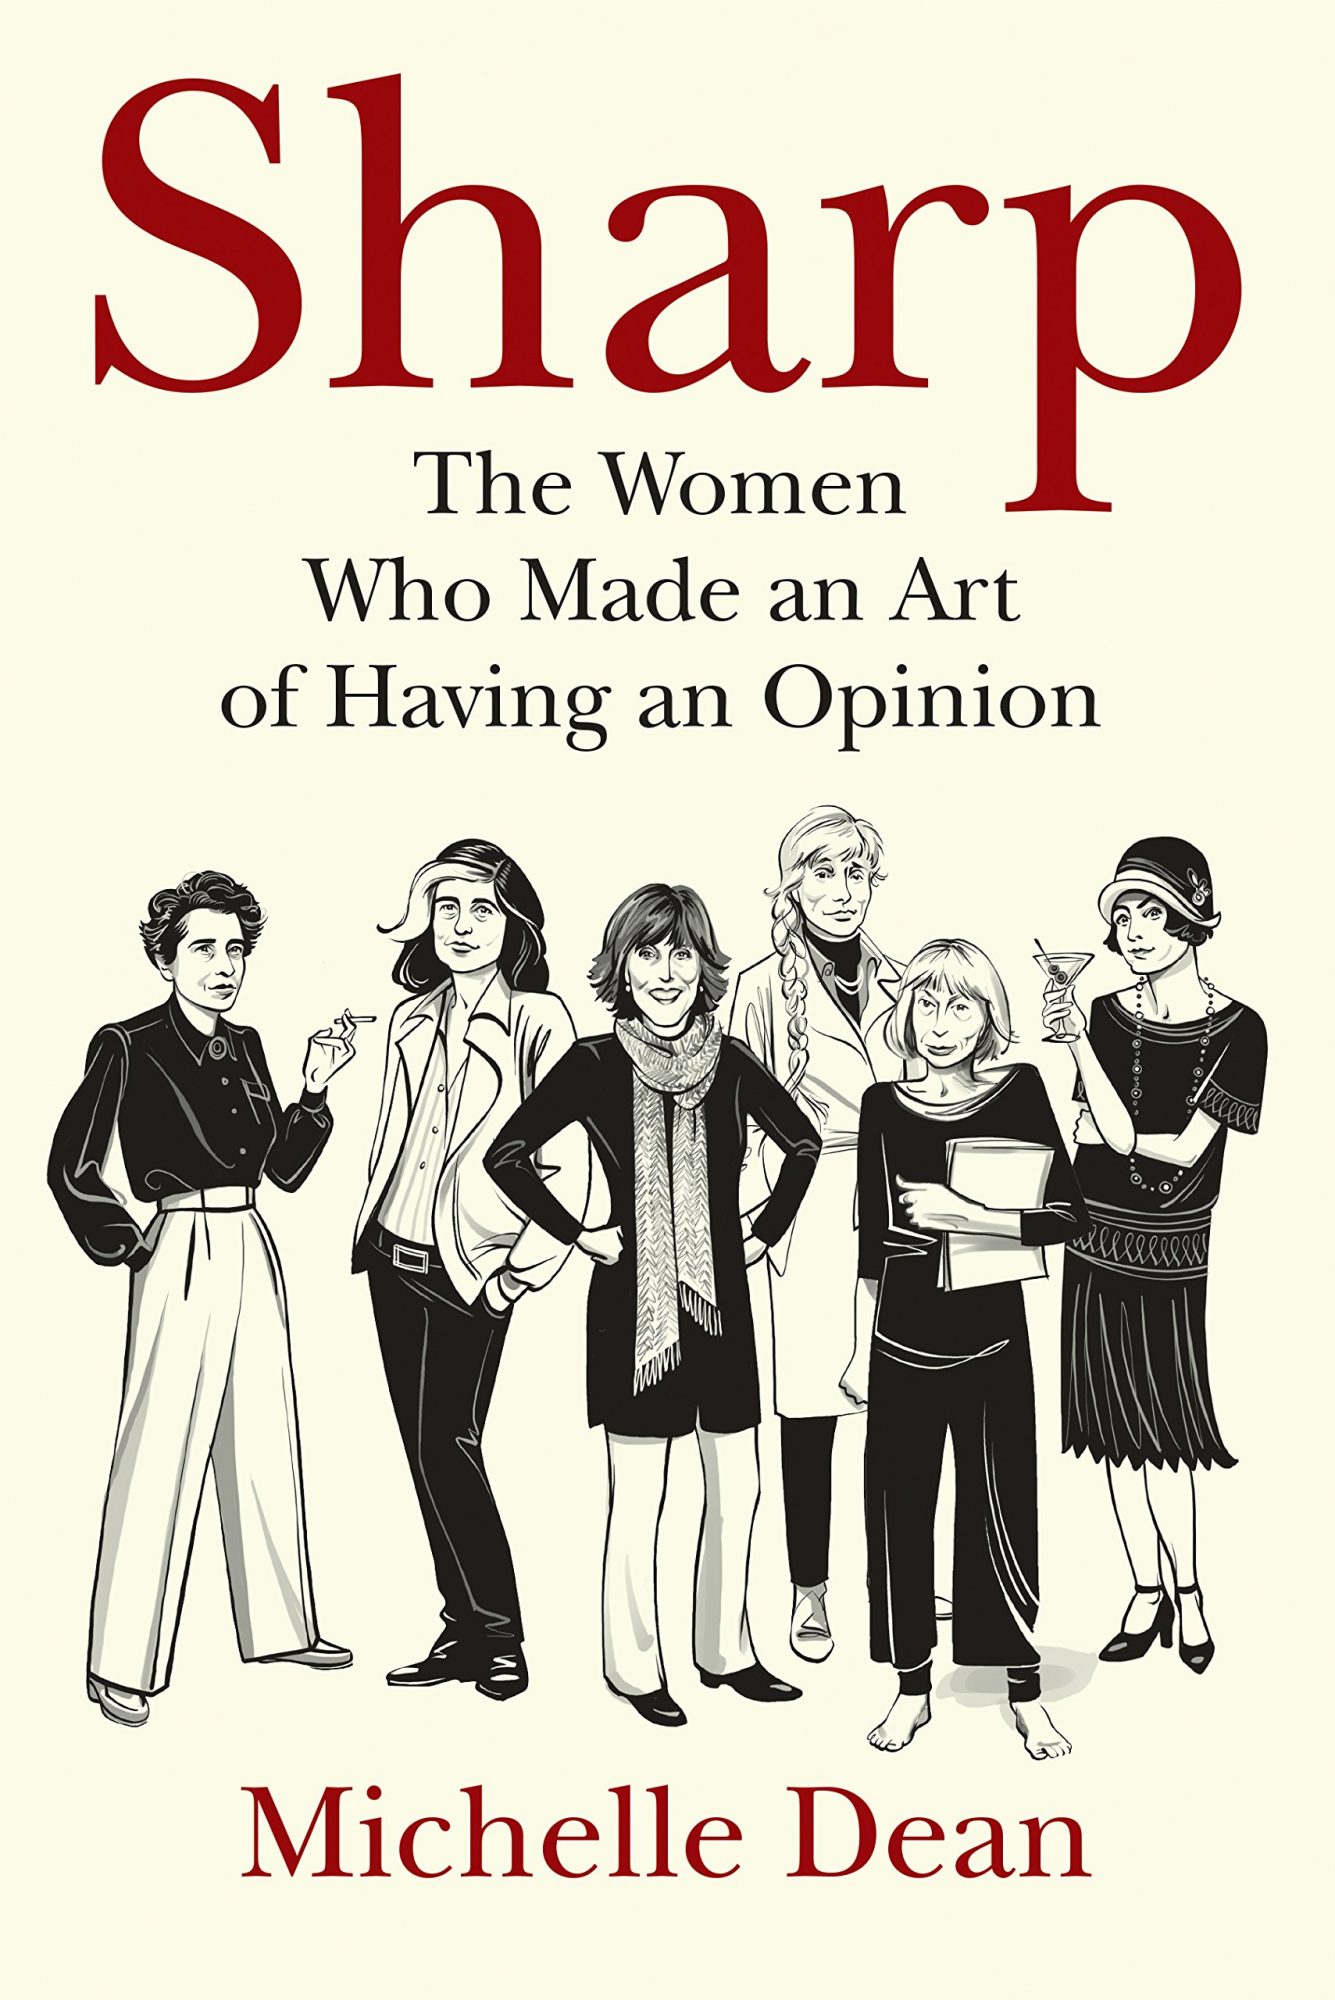 Sharp: The Women Who Made an Art of Having an Opinion by Michelle Dean